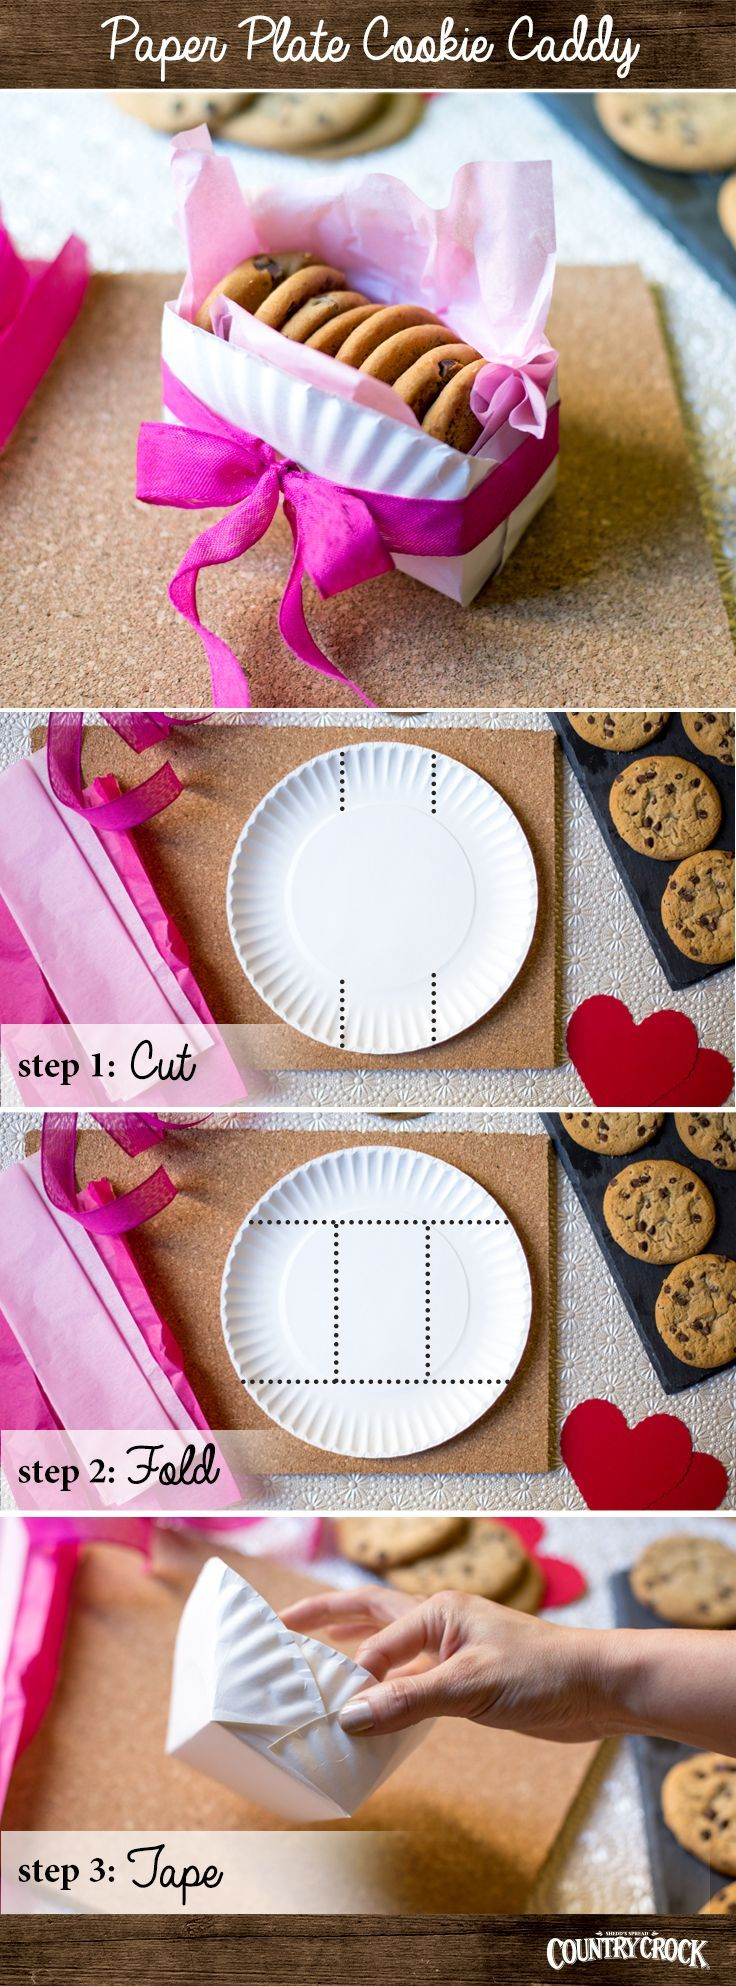 When it comes to Valentine's Day, handmade always wins. Chocolate chip cookie caddies are perfect for your kids' school sweethearts.